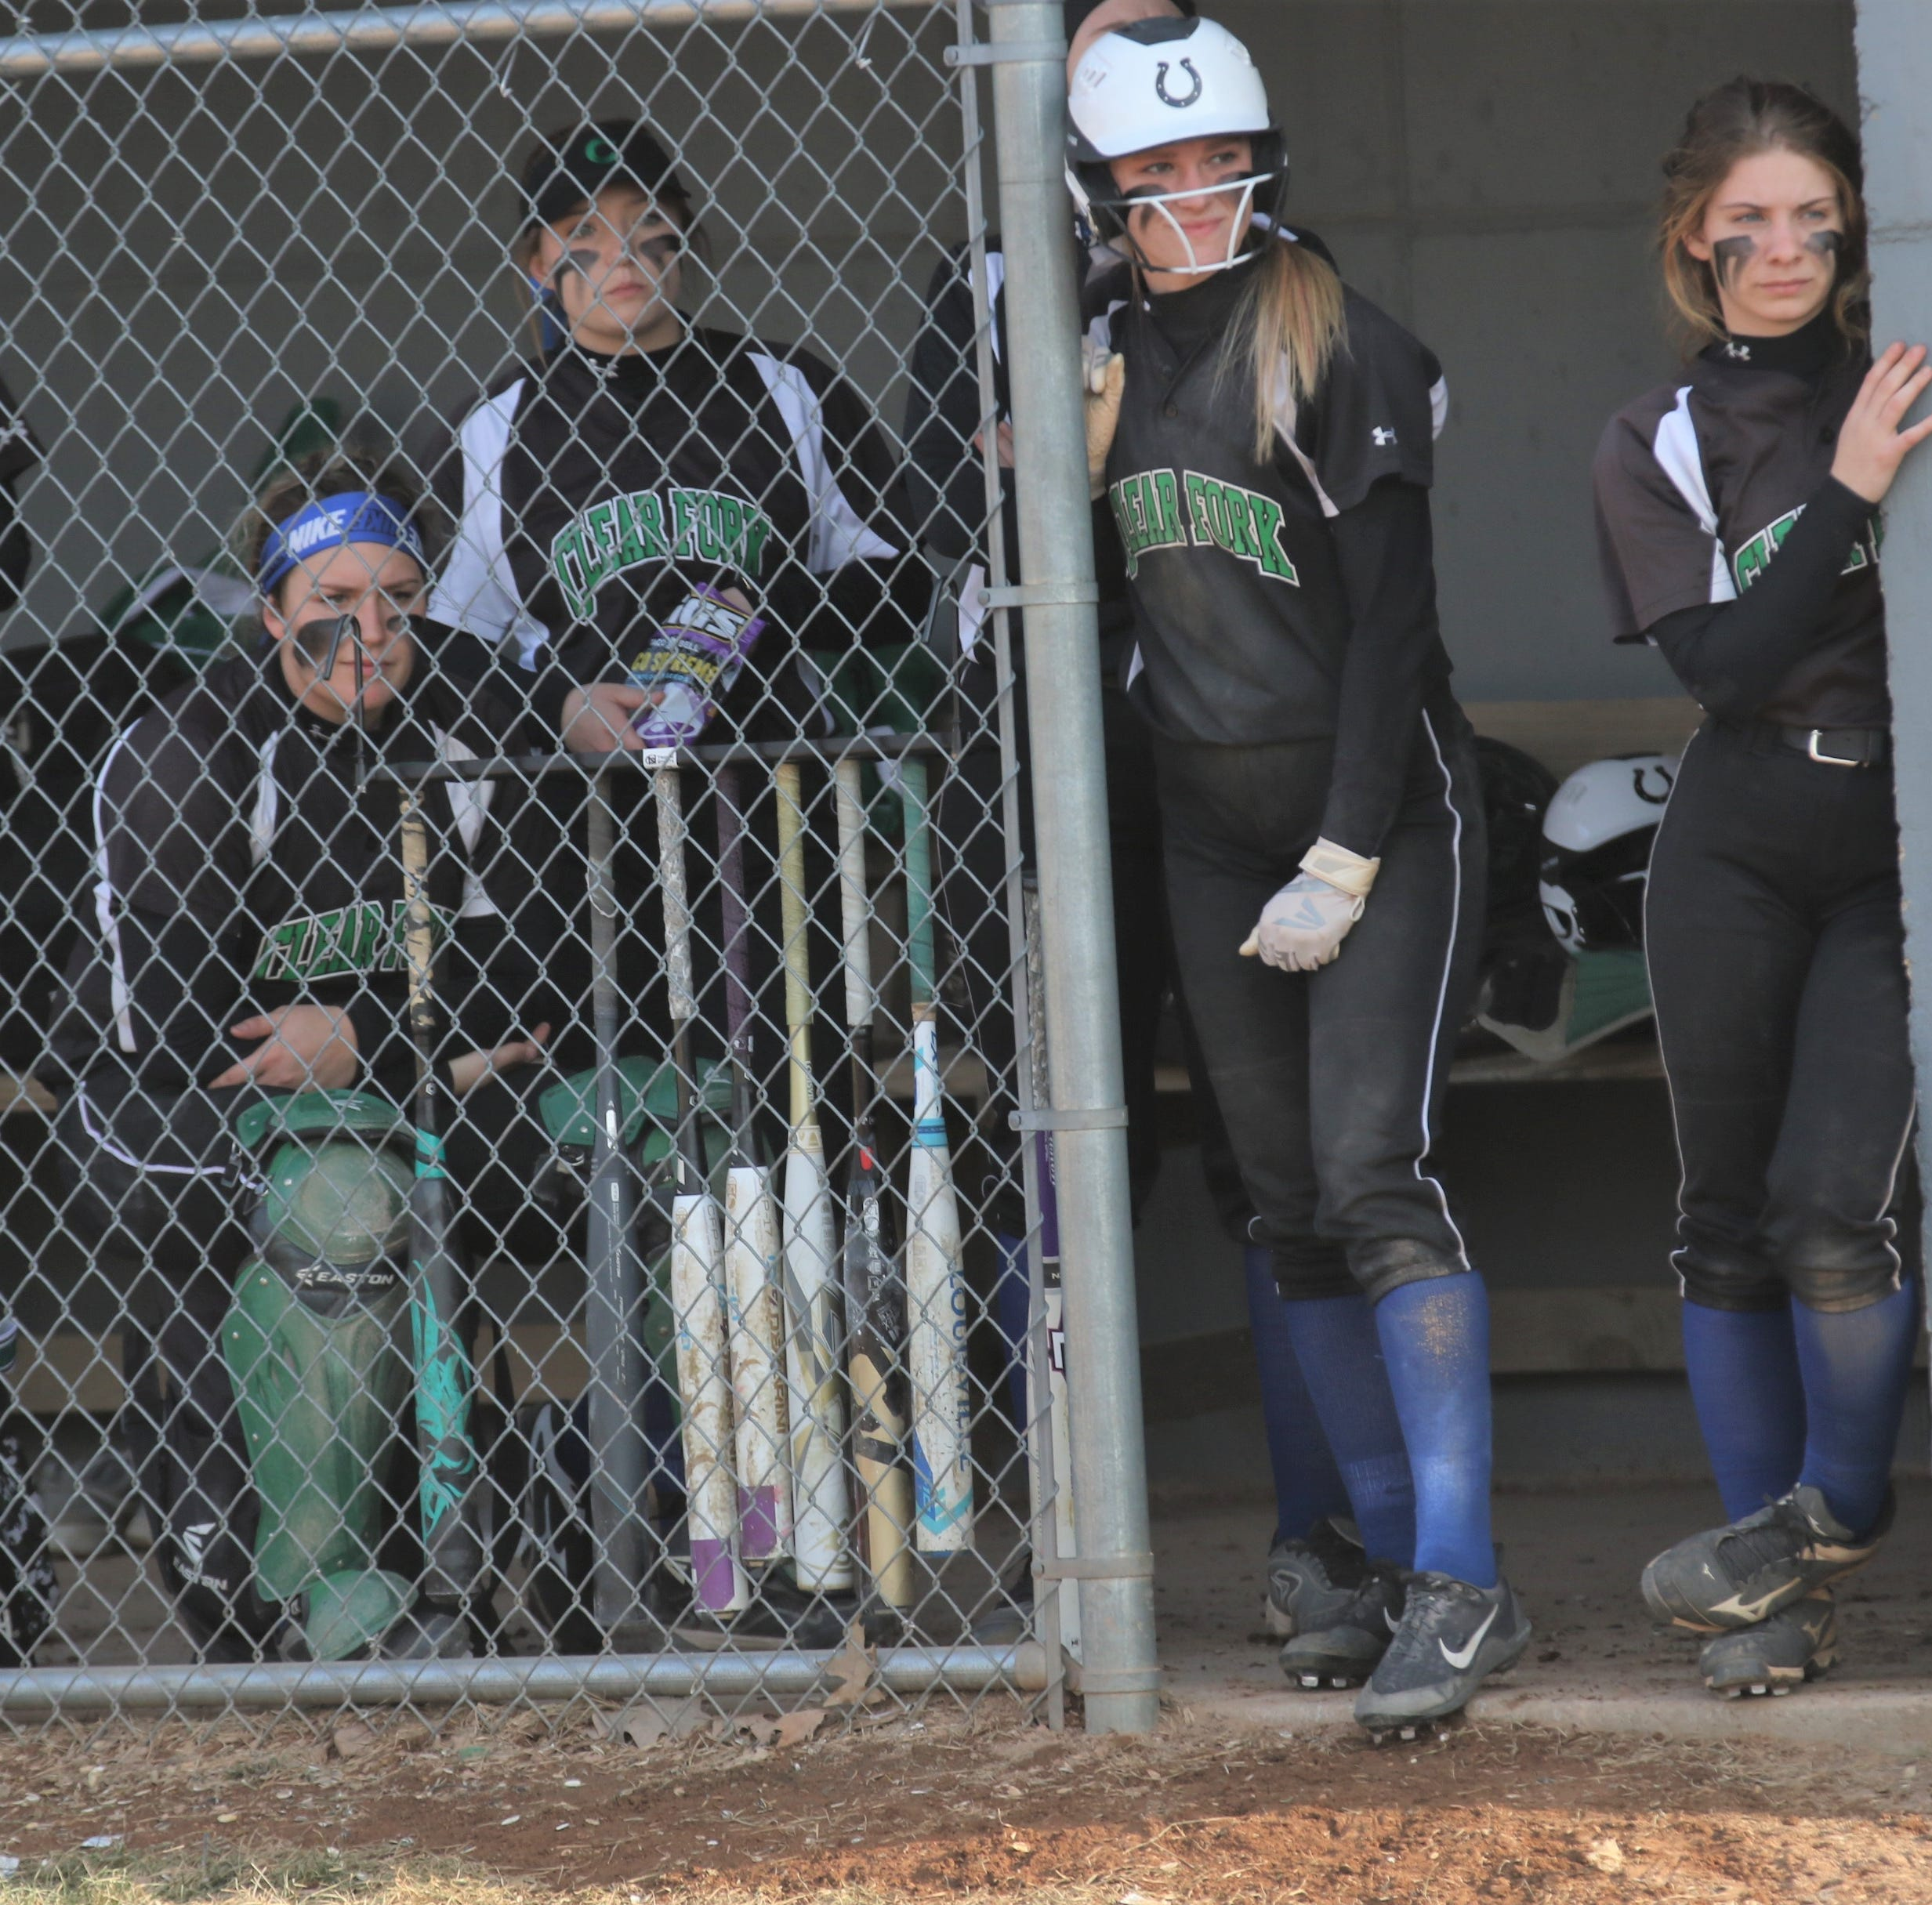 Richland County Softball Power Poll: 5 undefeated teams make it crowded at the top